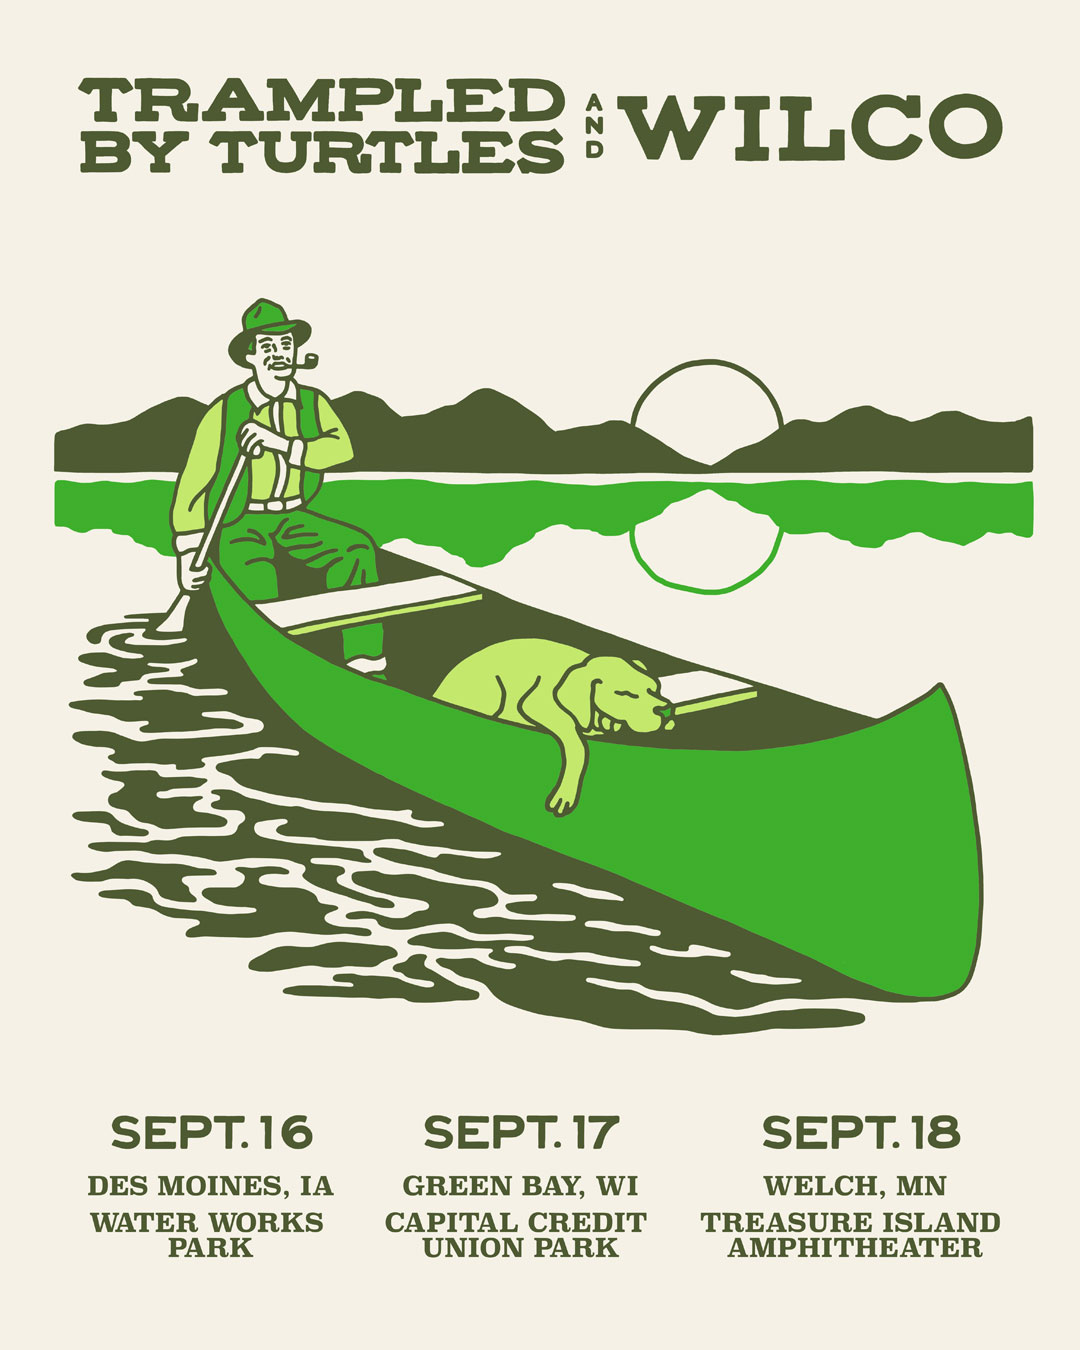 Trampled By Turtles and Wilco